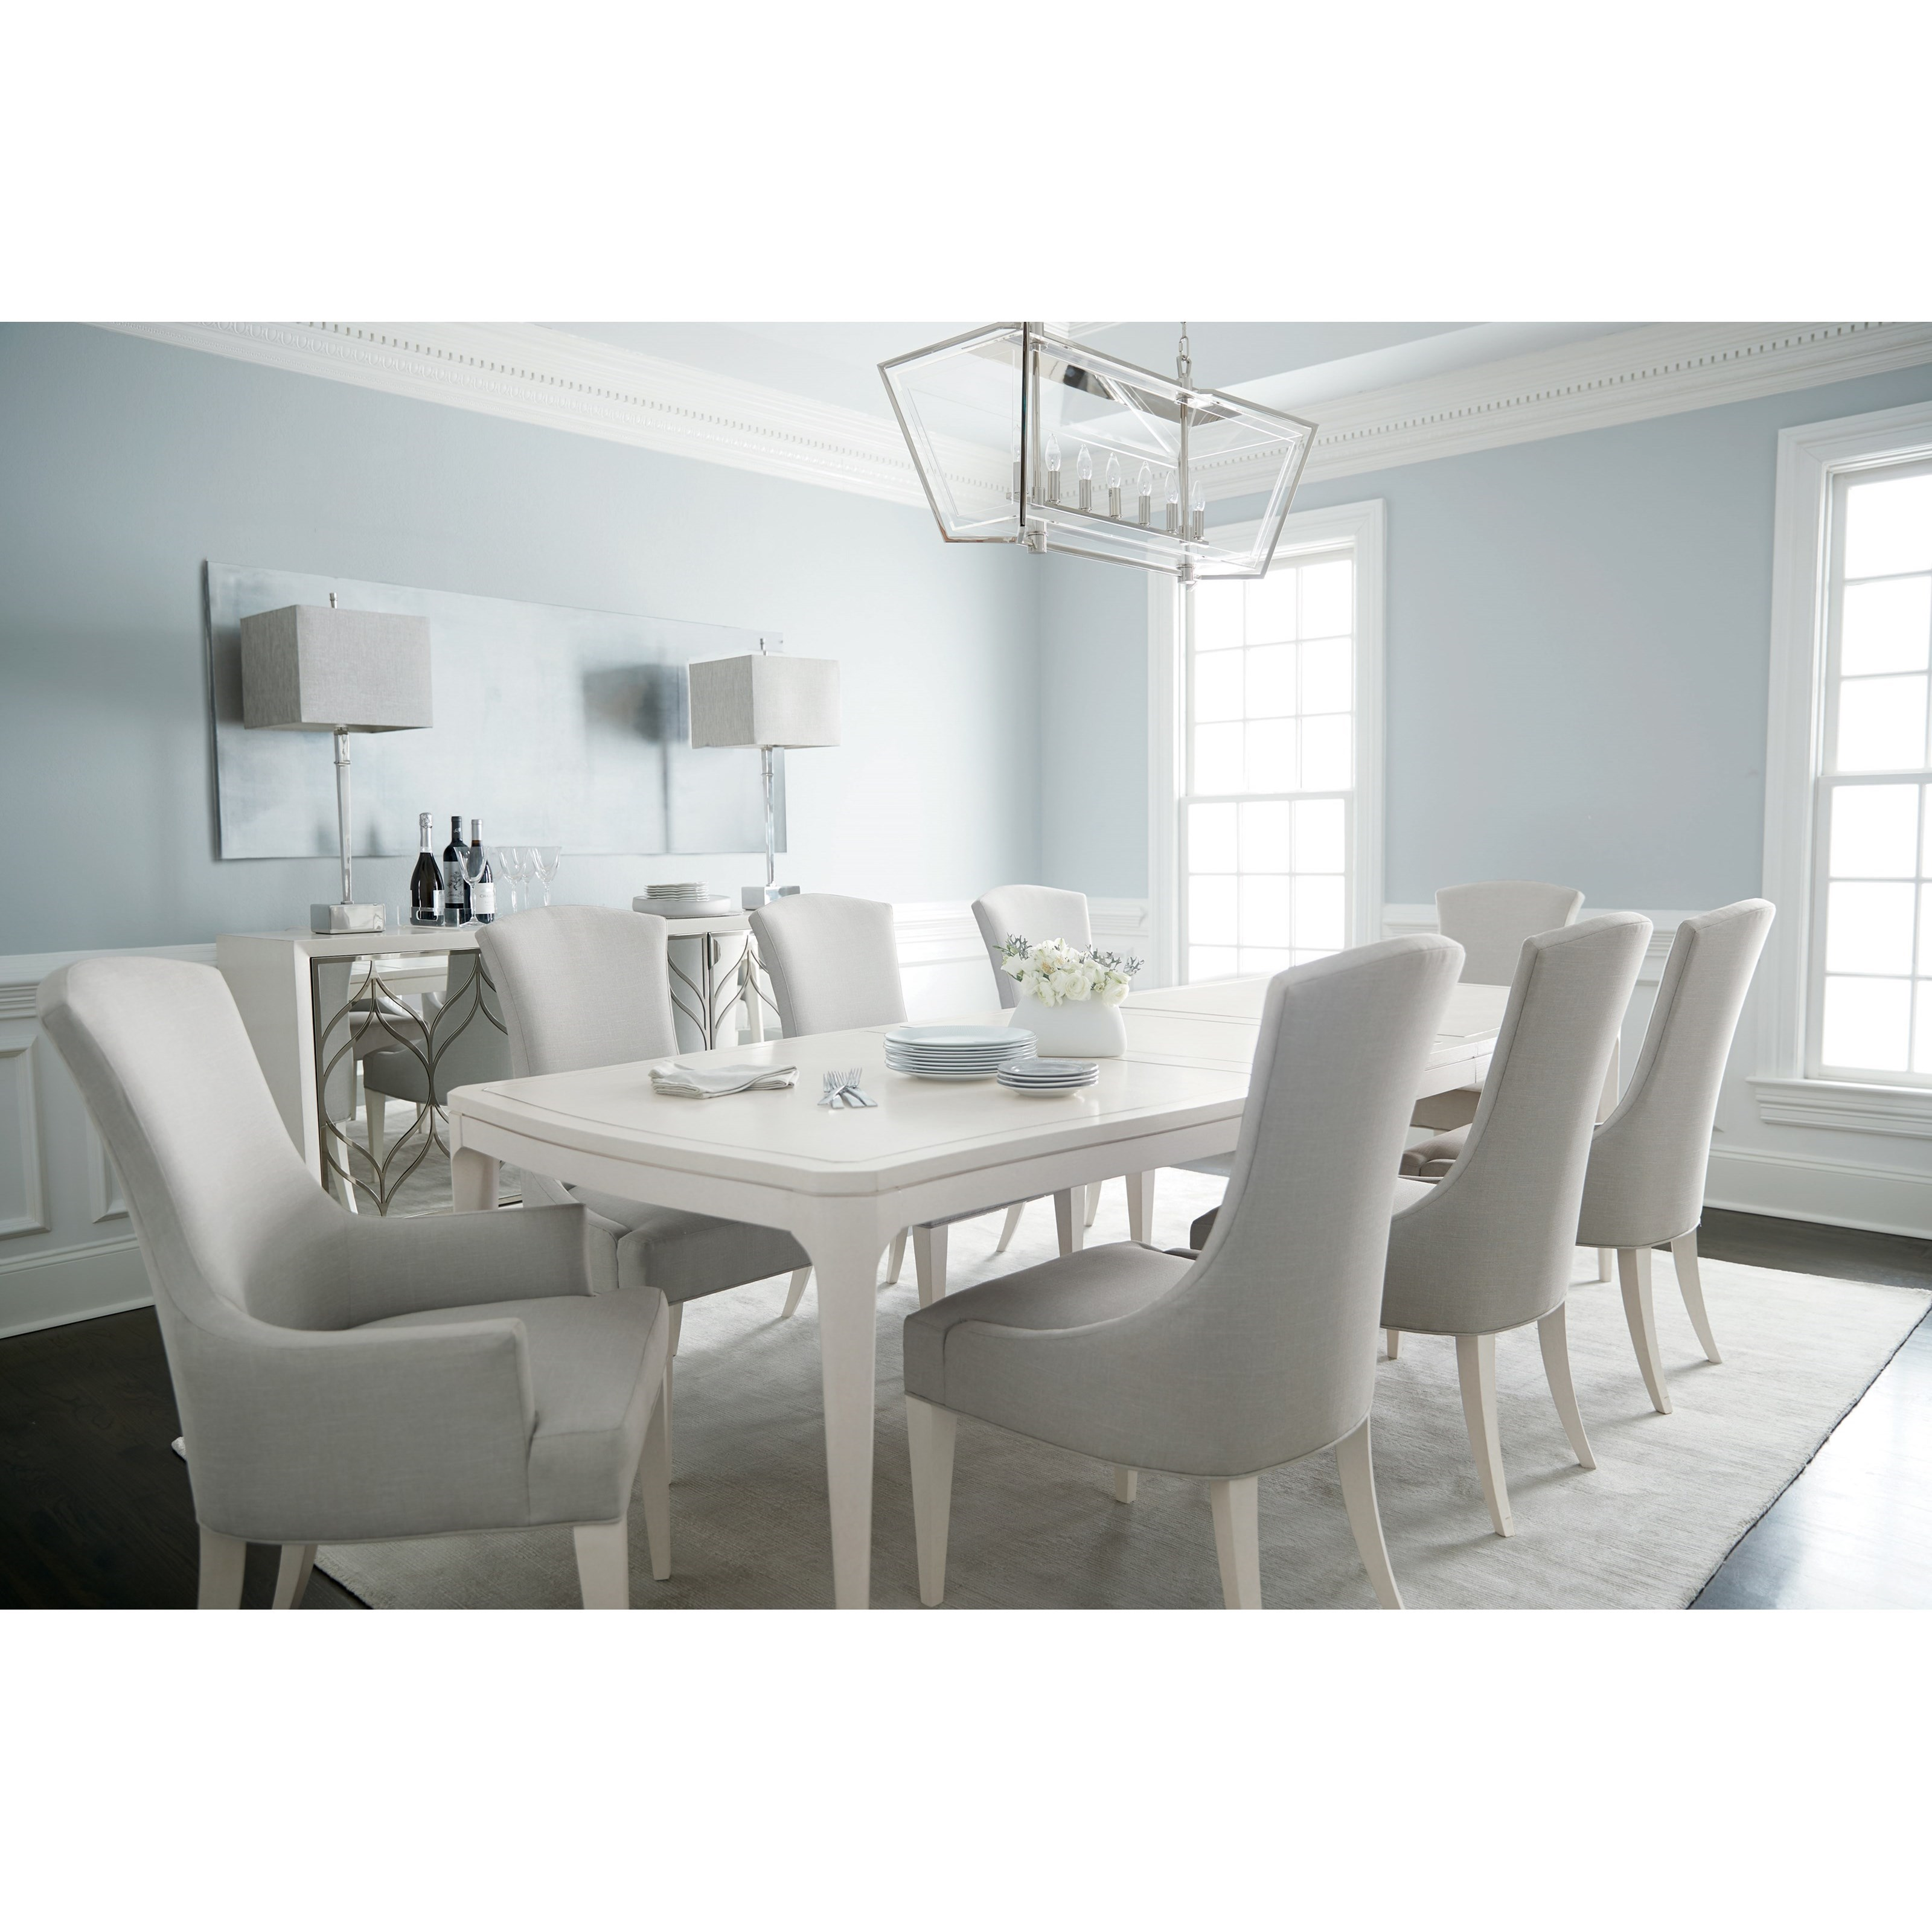 Calista 9 Piece Table and Chair Set by Bernhardt at Baer's Furniture